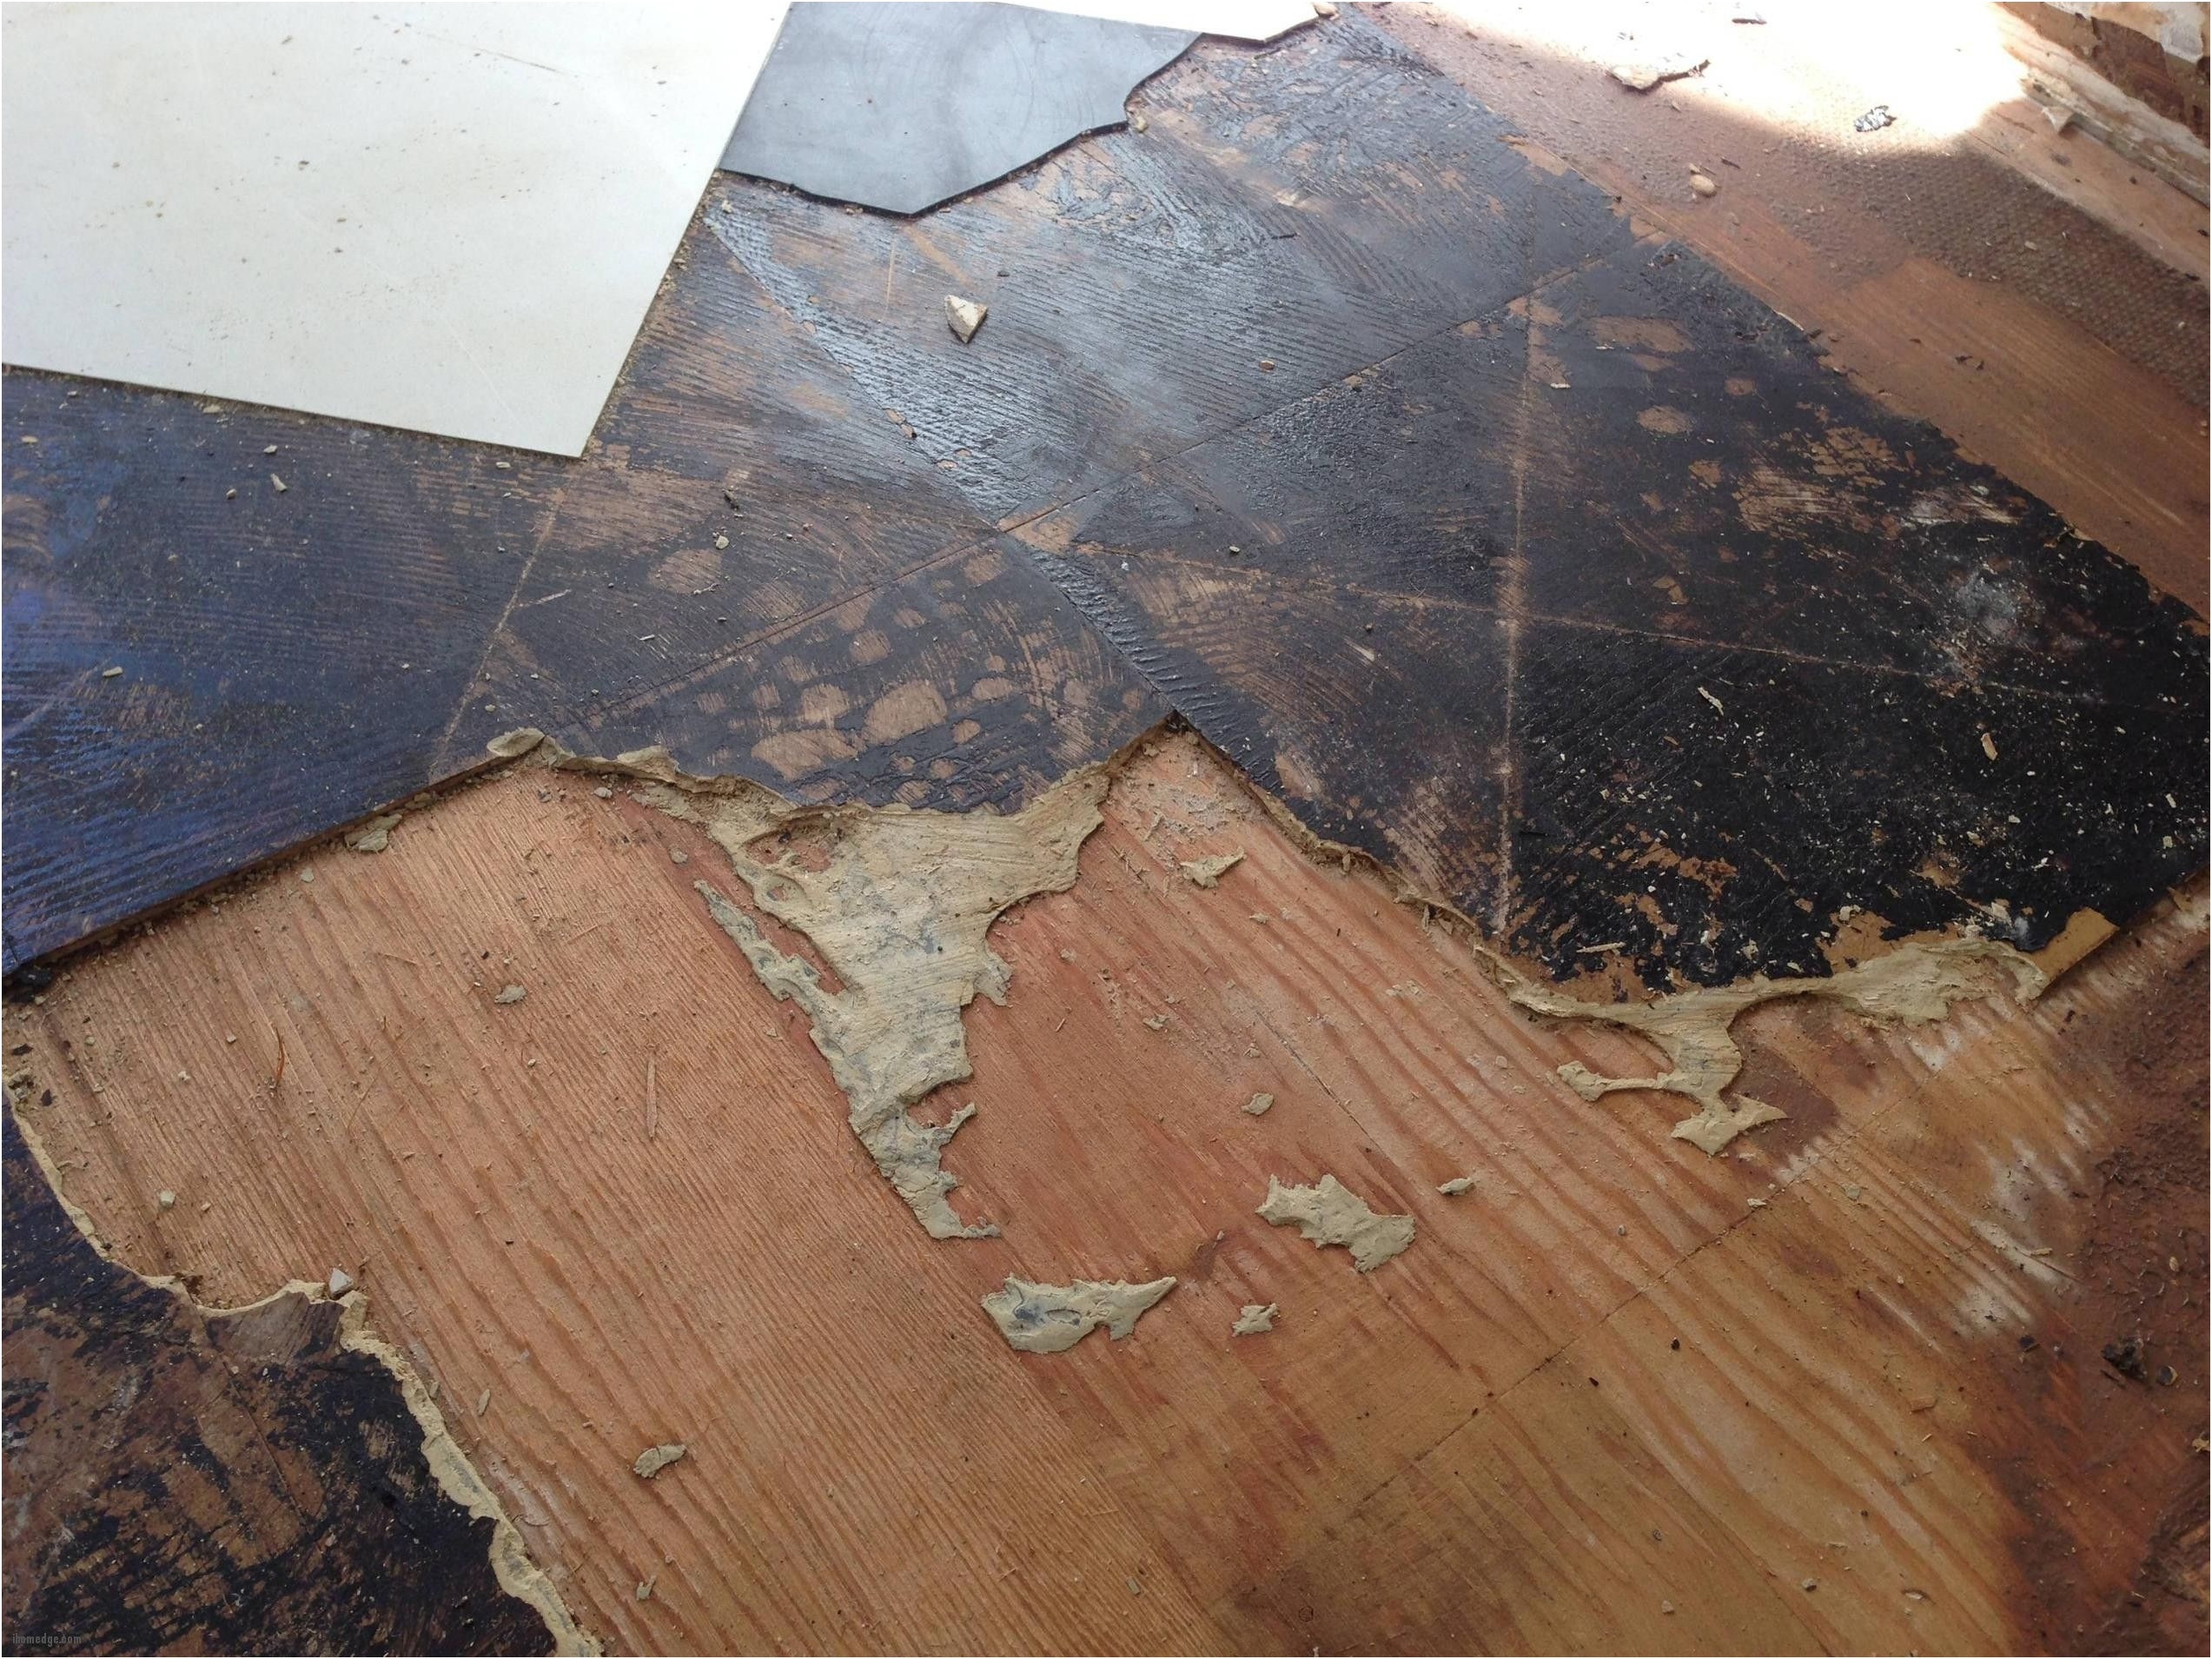 Hardwood Flooring for Sale Near Me Of Flooring On Sale Near Me Photographies 0d Grace Place Barnegat Nj for Flooring On Sale Near Me Fine Wonderful Vinyl Wood Flooring A Little Slice Of Hell Of